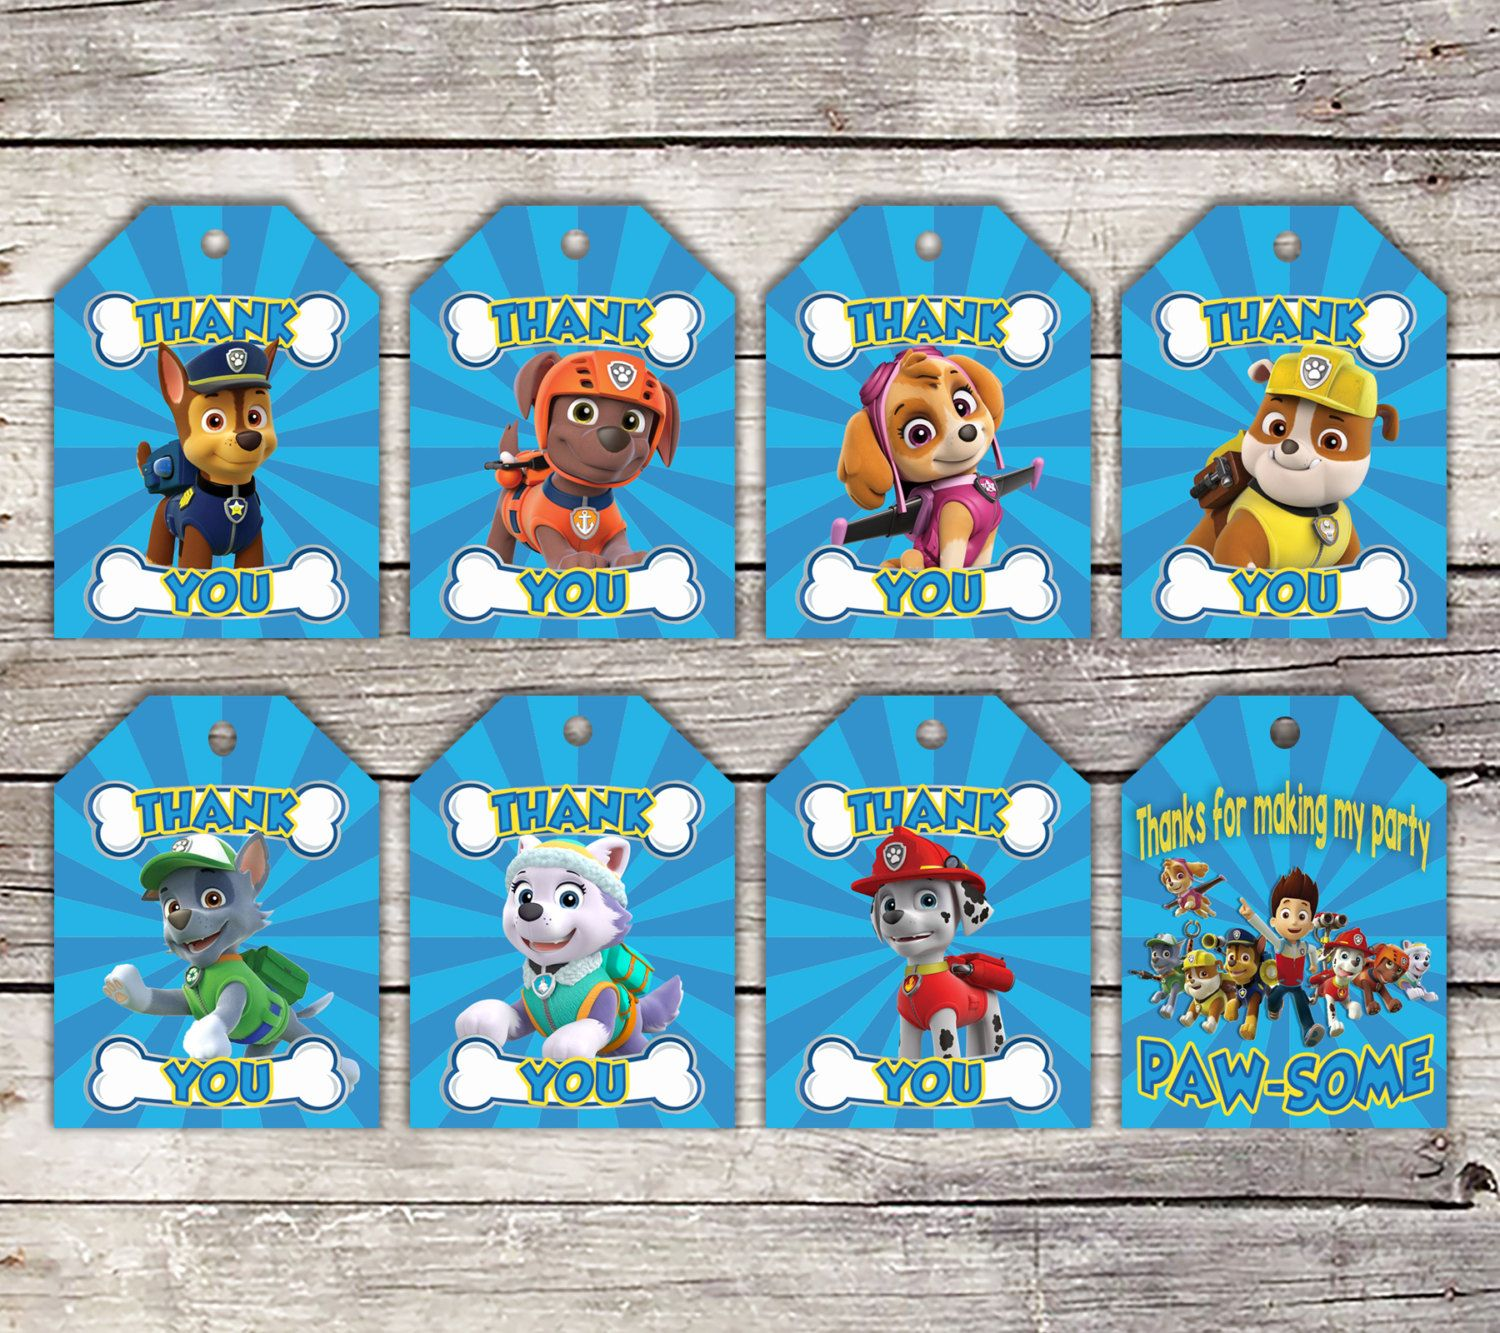 graphic about Paw Patrol Printable Decorations named Paw Patrol, Paw Patrol Prefer Tags, Paw Patrol Celebration, Paw